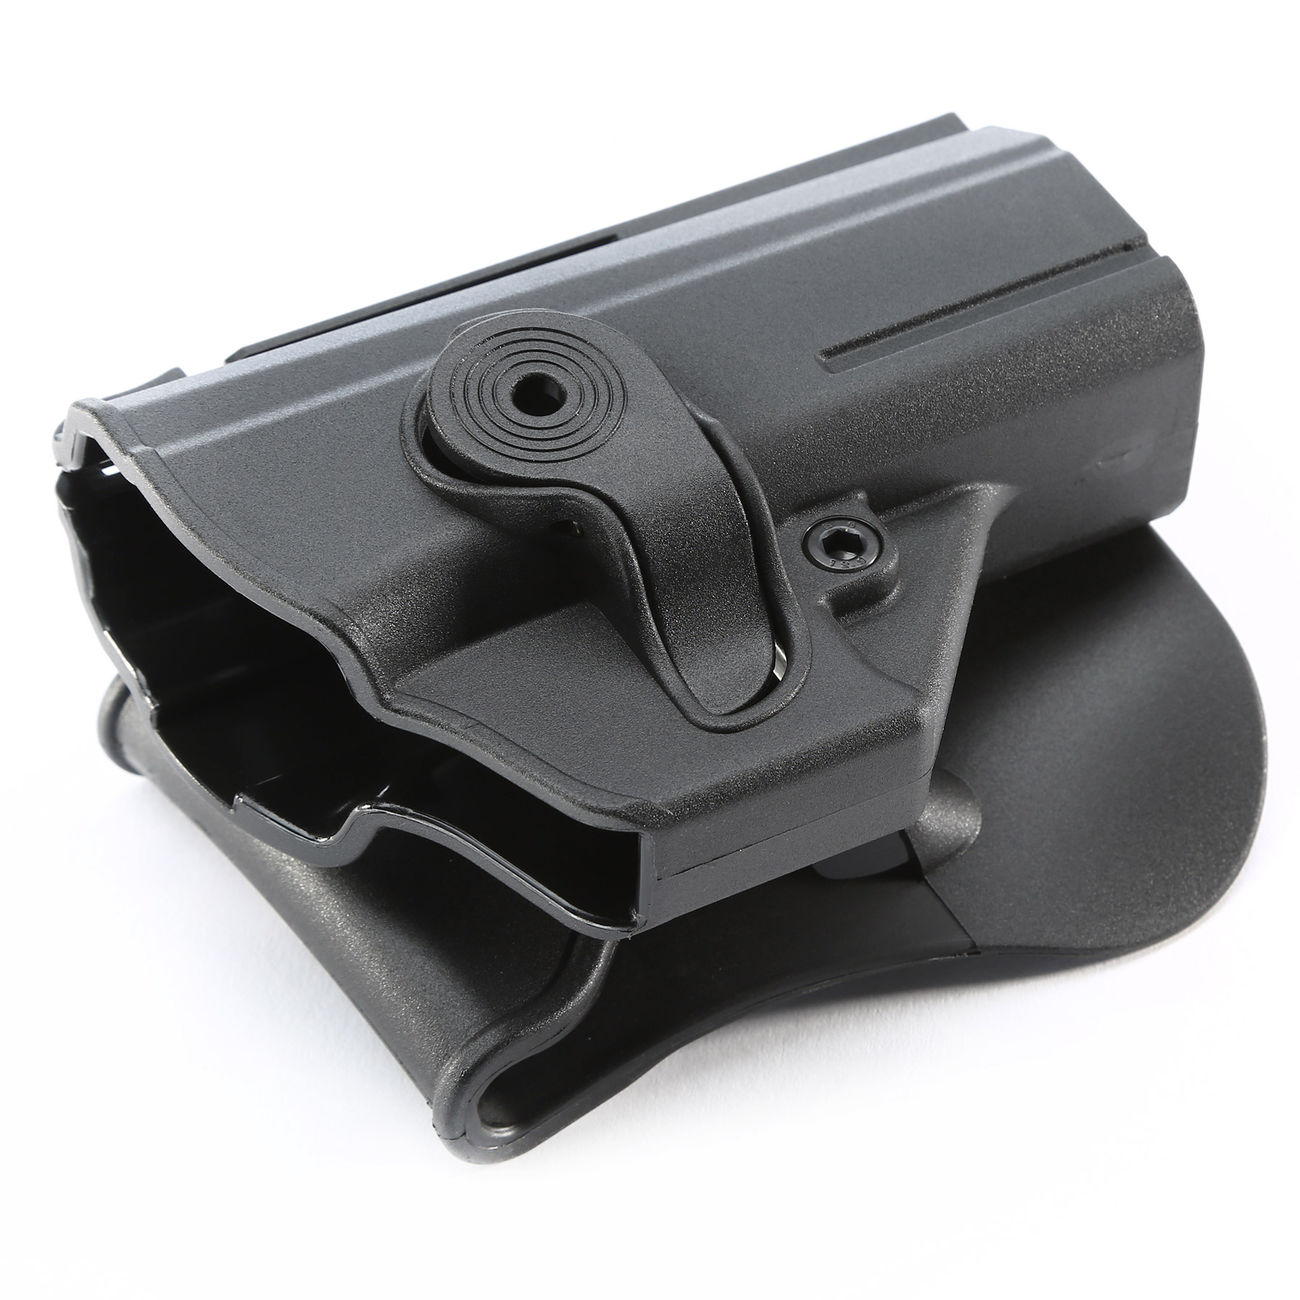 IMI Defense Level 2 Holster Kunststoff Paddle für CZ P-07 schwarz 2